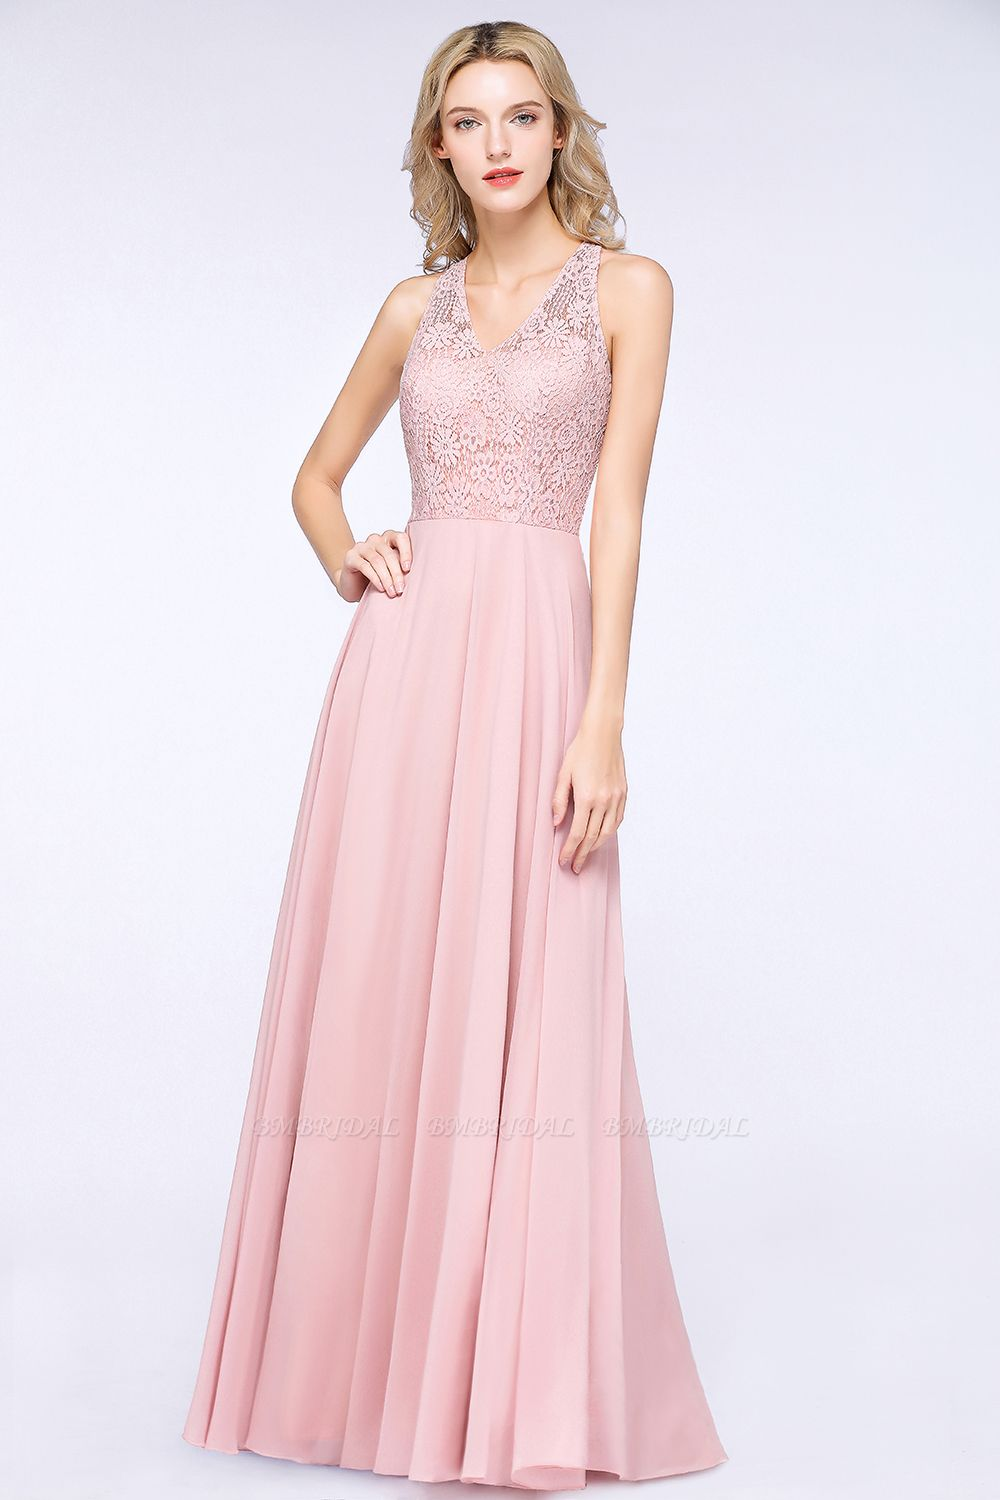 Modest V-Neck Sleeveless Pink Affordable Bridesmaid Dresses Lace